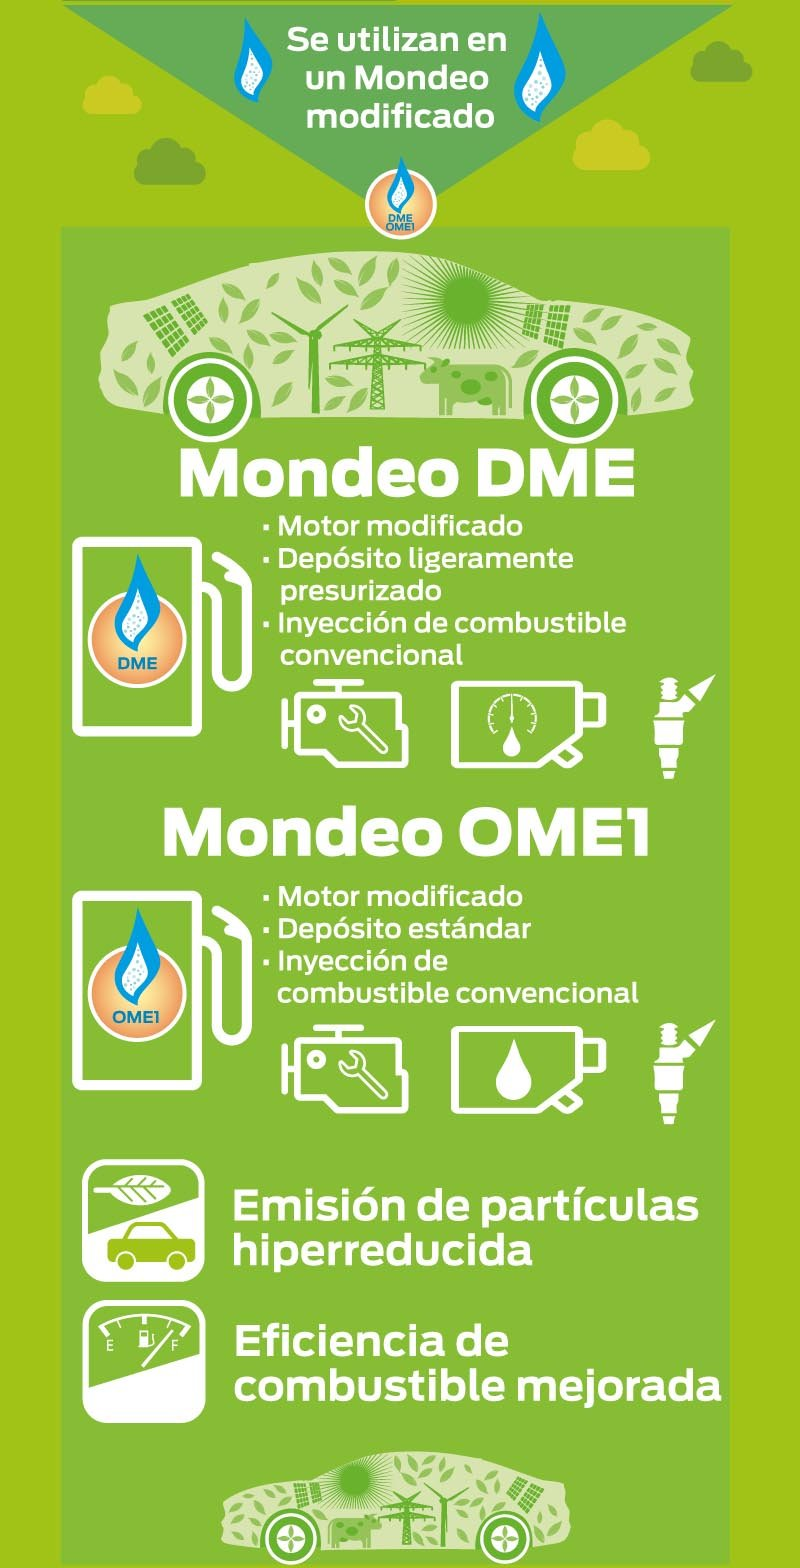 dme_ome_ES_1